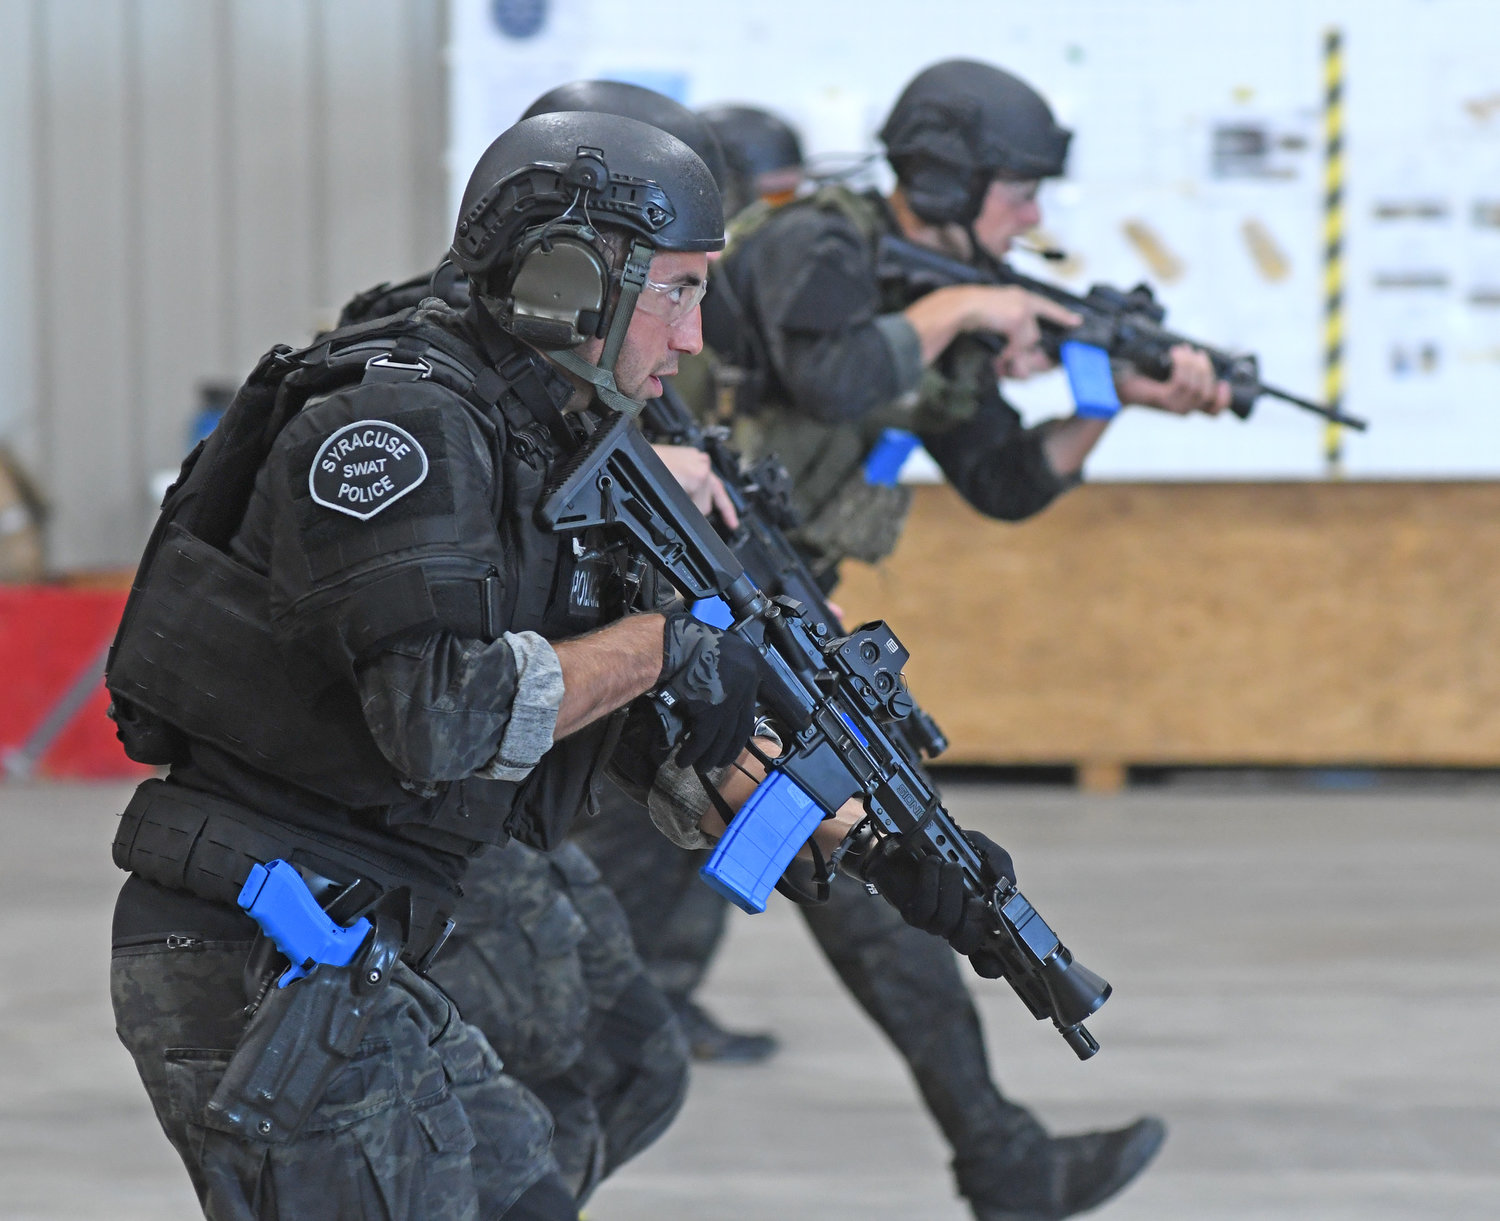 MOVE AND SHOOT — Members of the Utica and Syracuse SWAT teams practice running with their guns raised during one of several training sessions in Whitestown on Thursday.